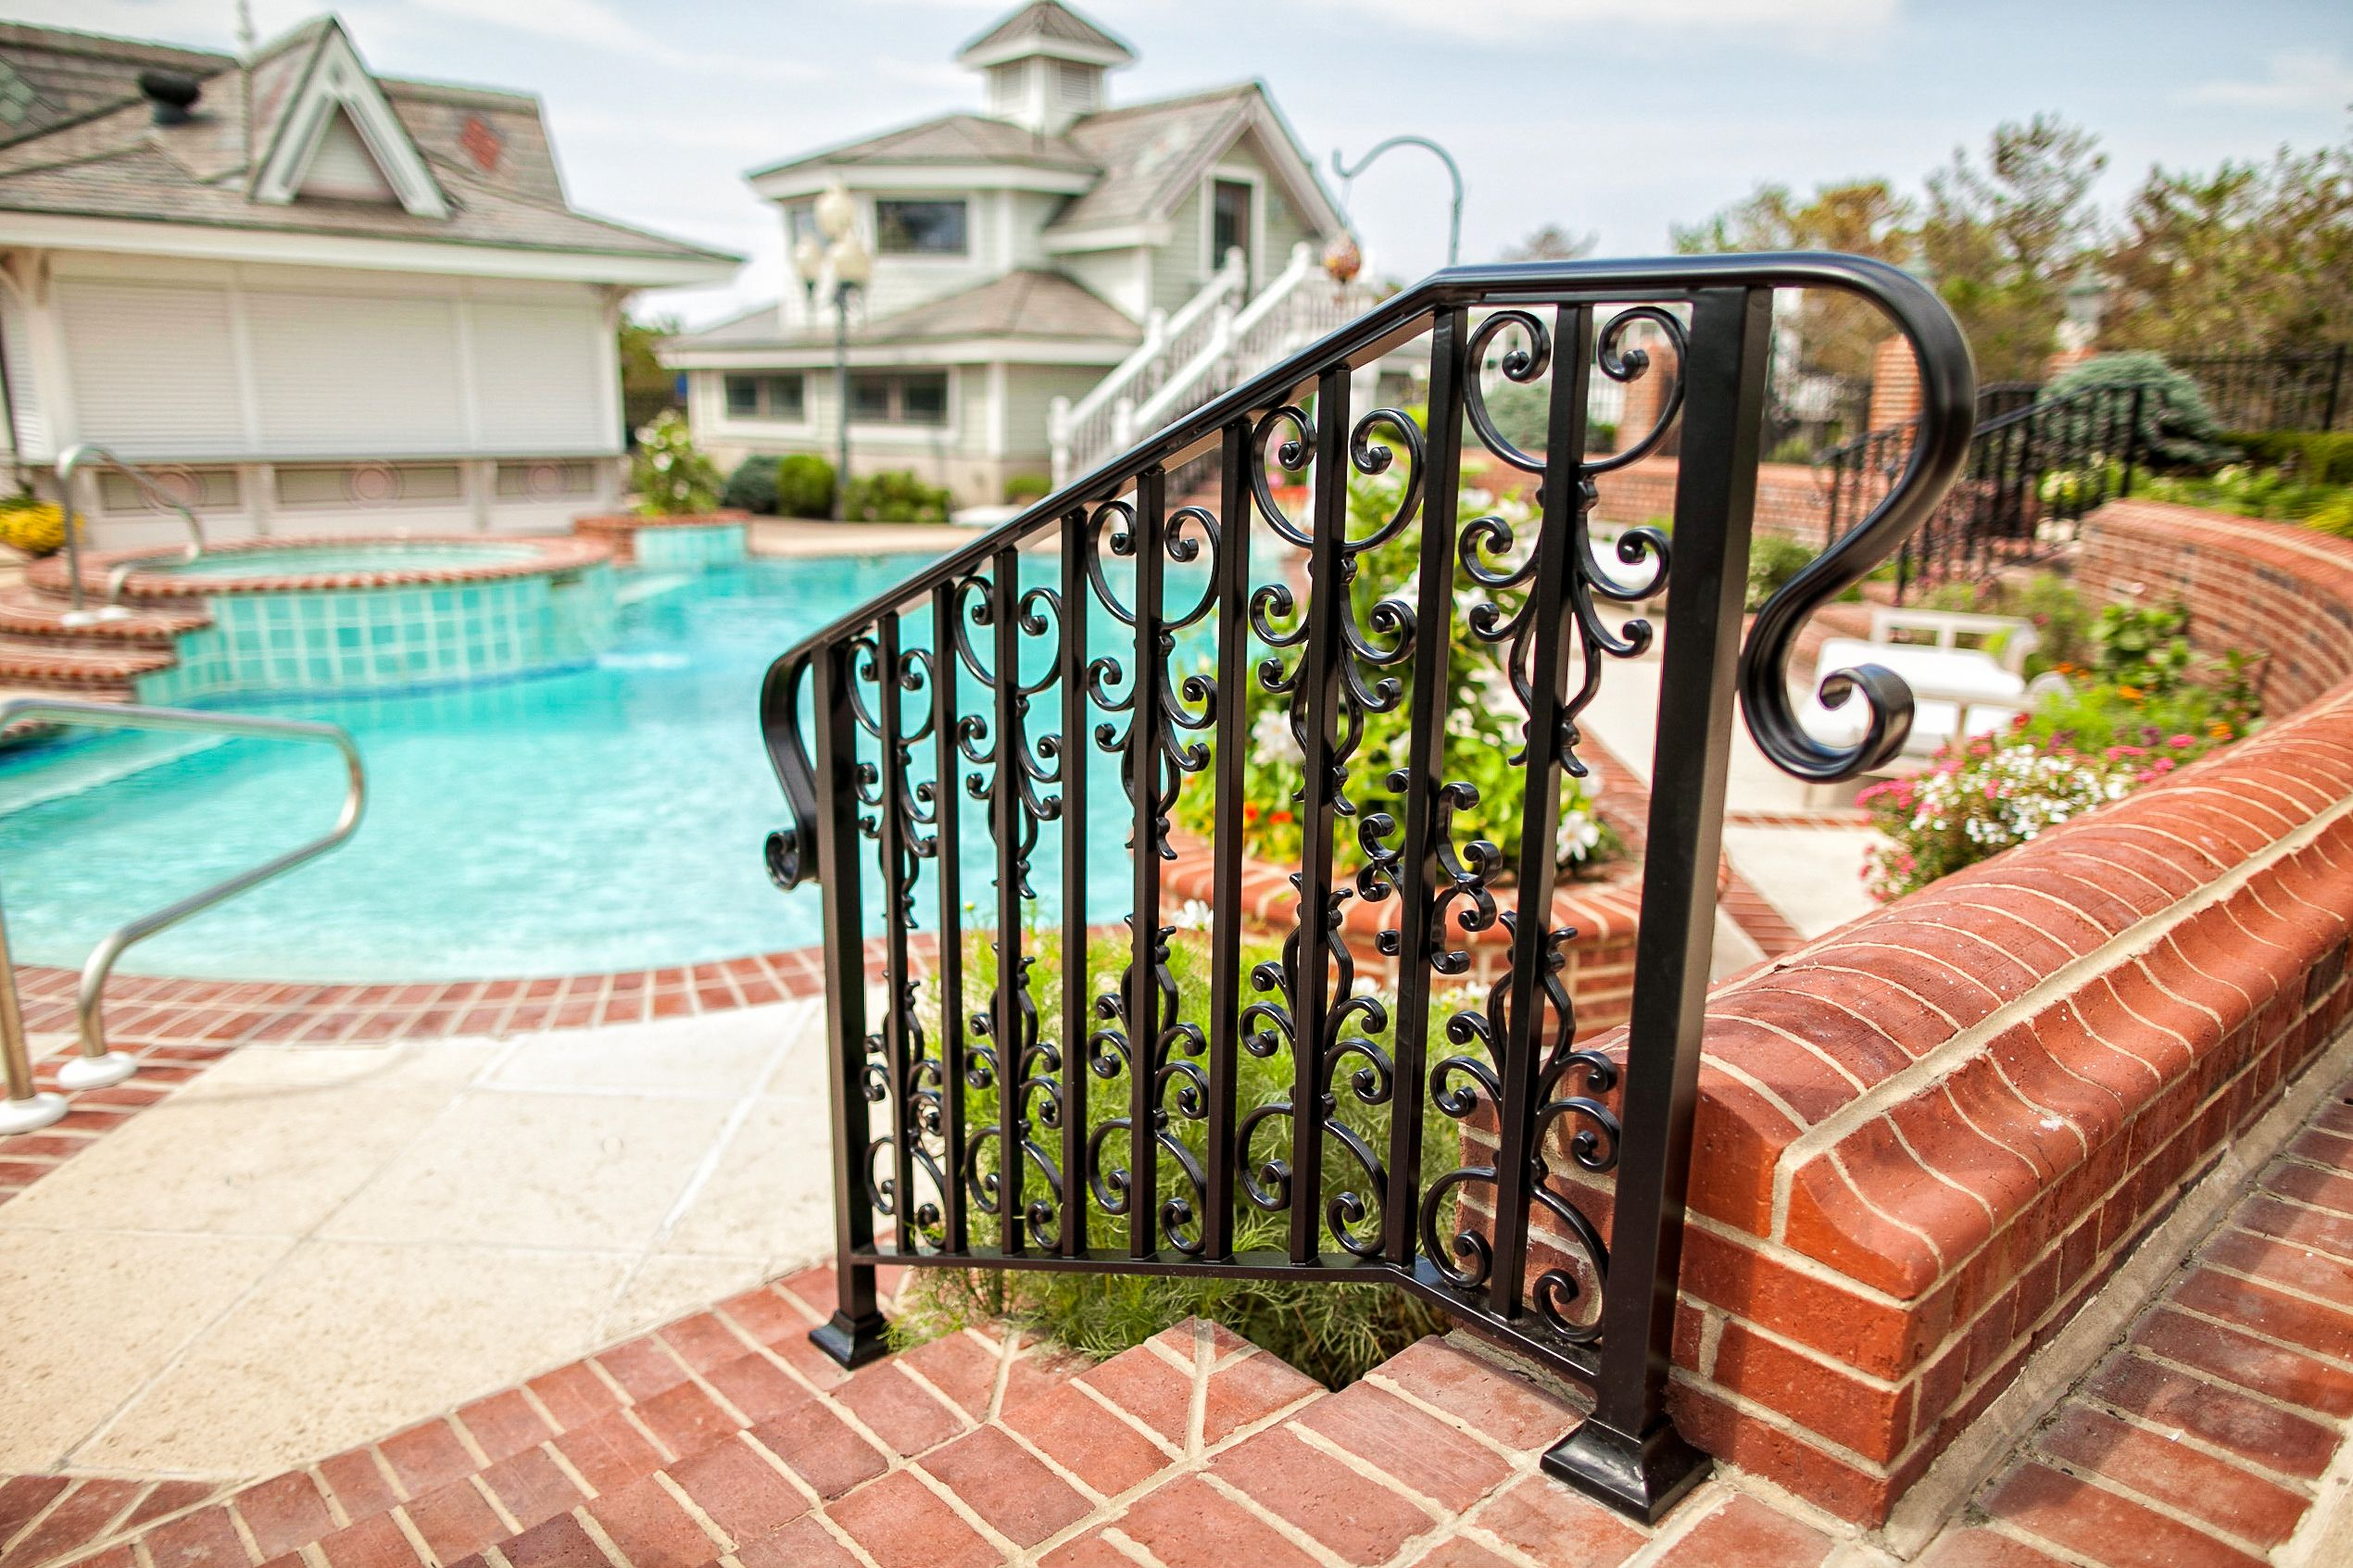 Step Railing For A Pool Area 100 Recycled Solid Aluminum That